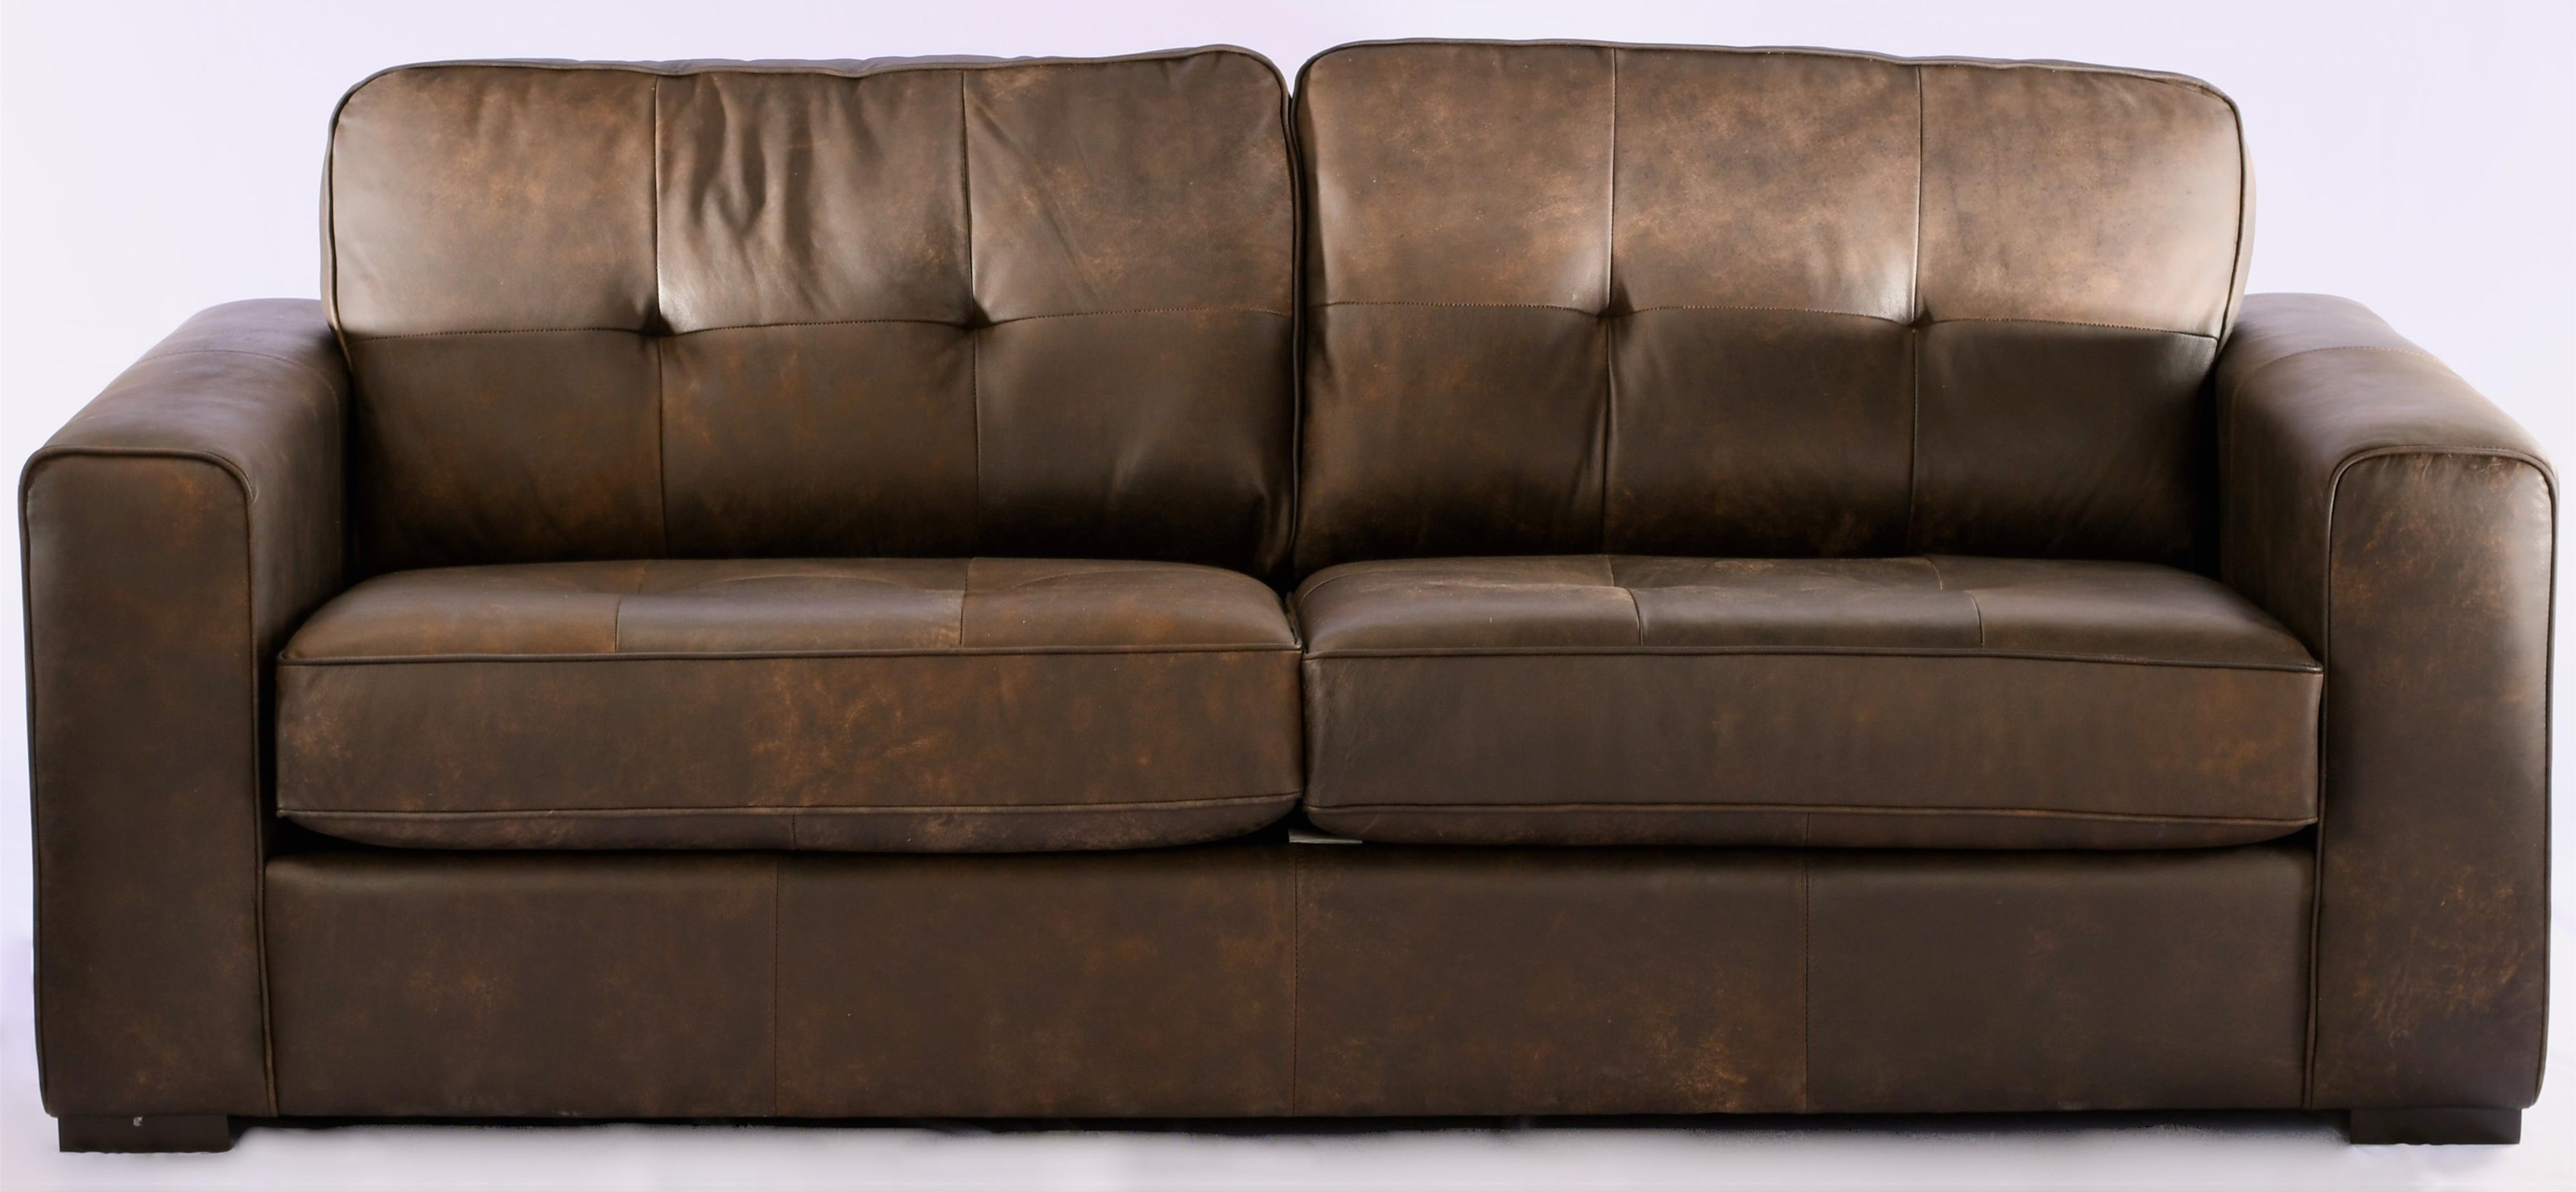 Starlette Sofa by Taelor Designs at Bennett's Furniture and Mattresses